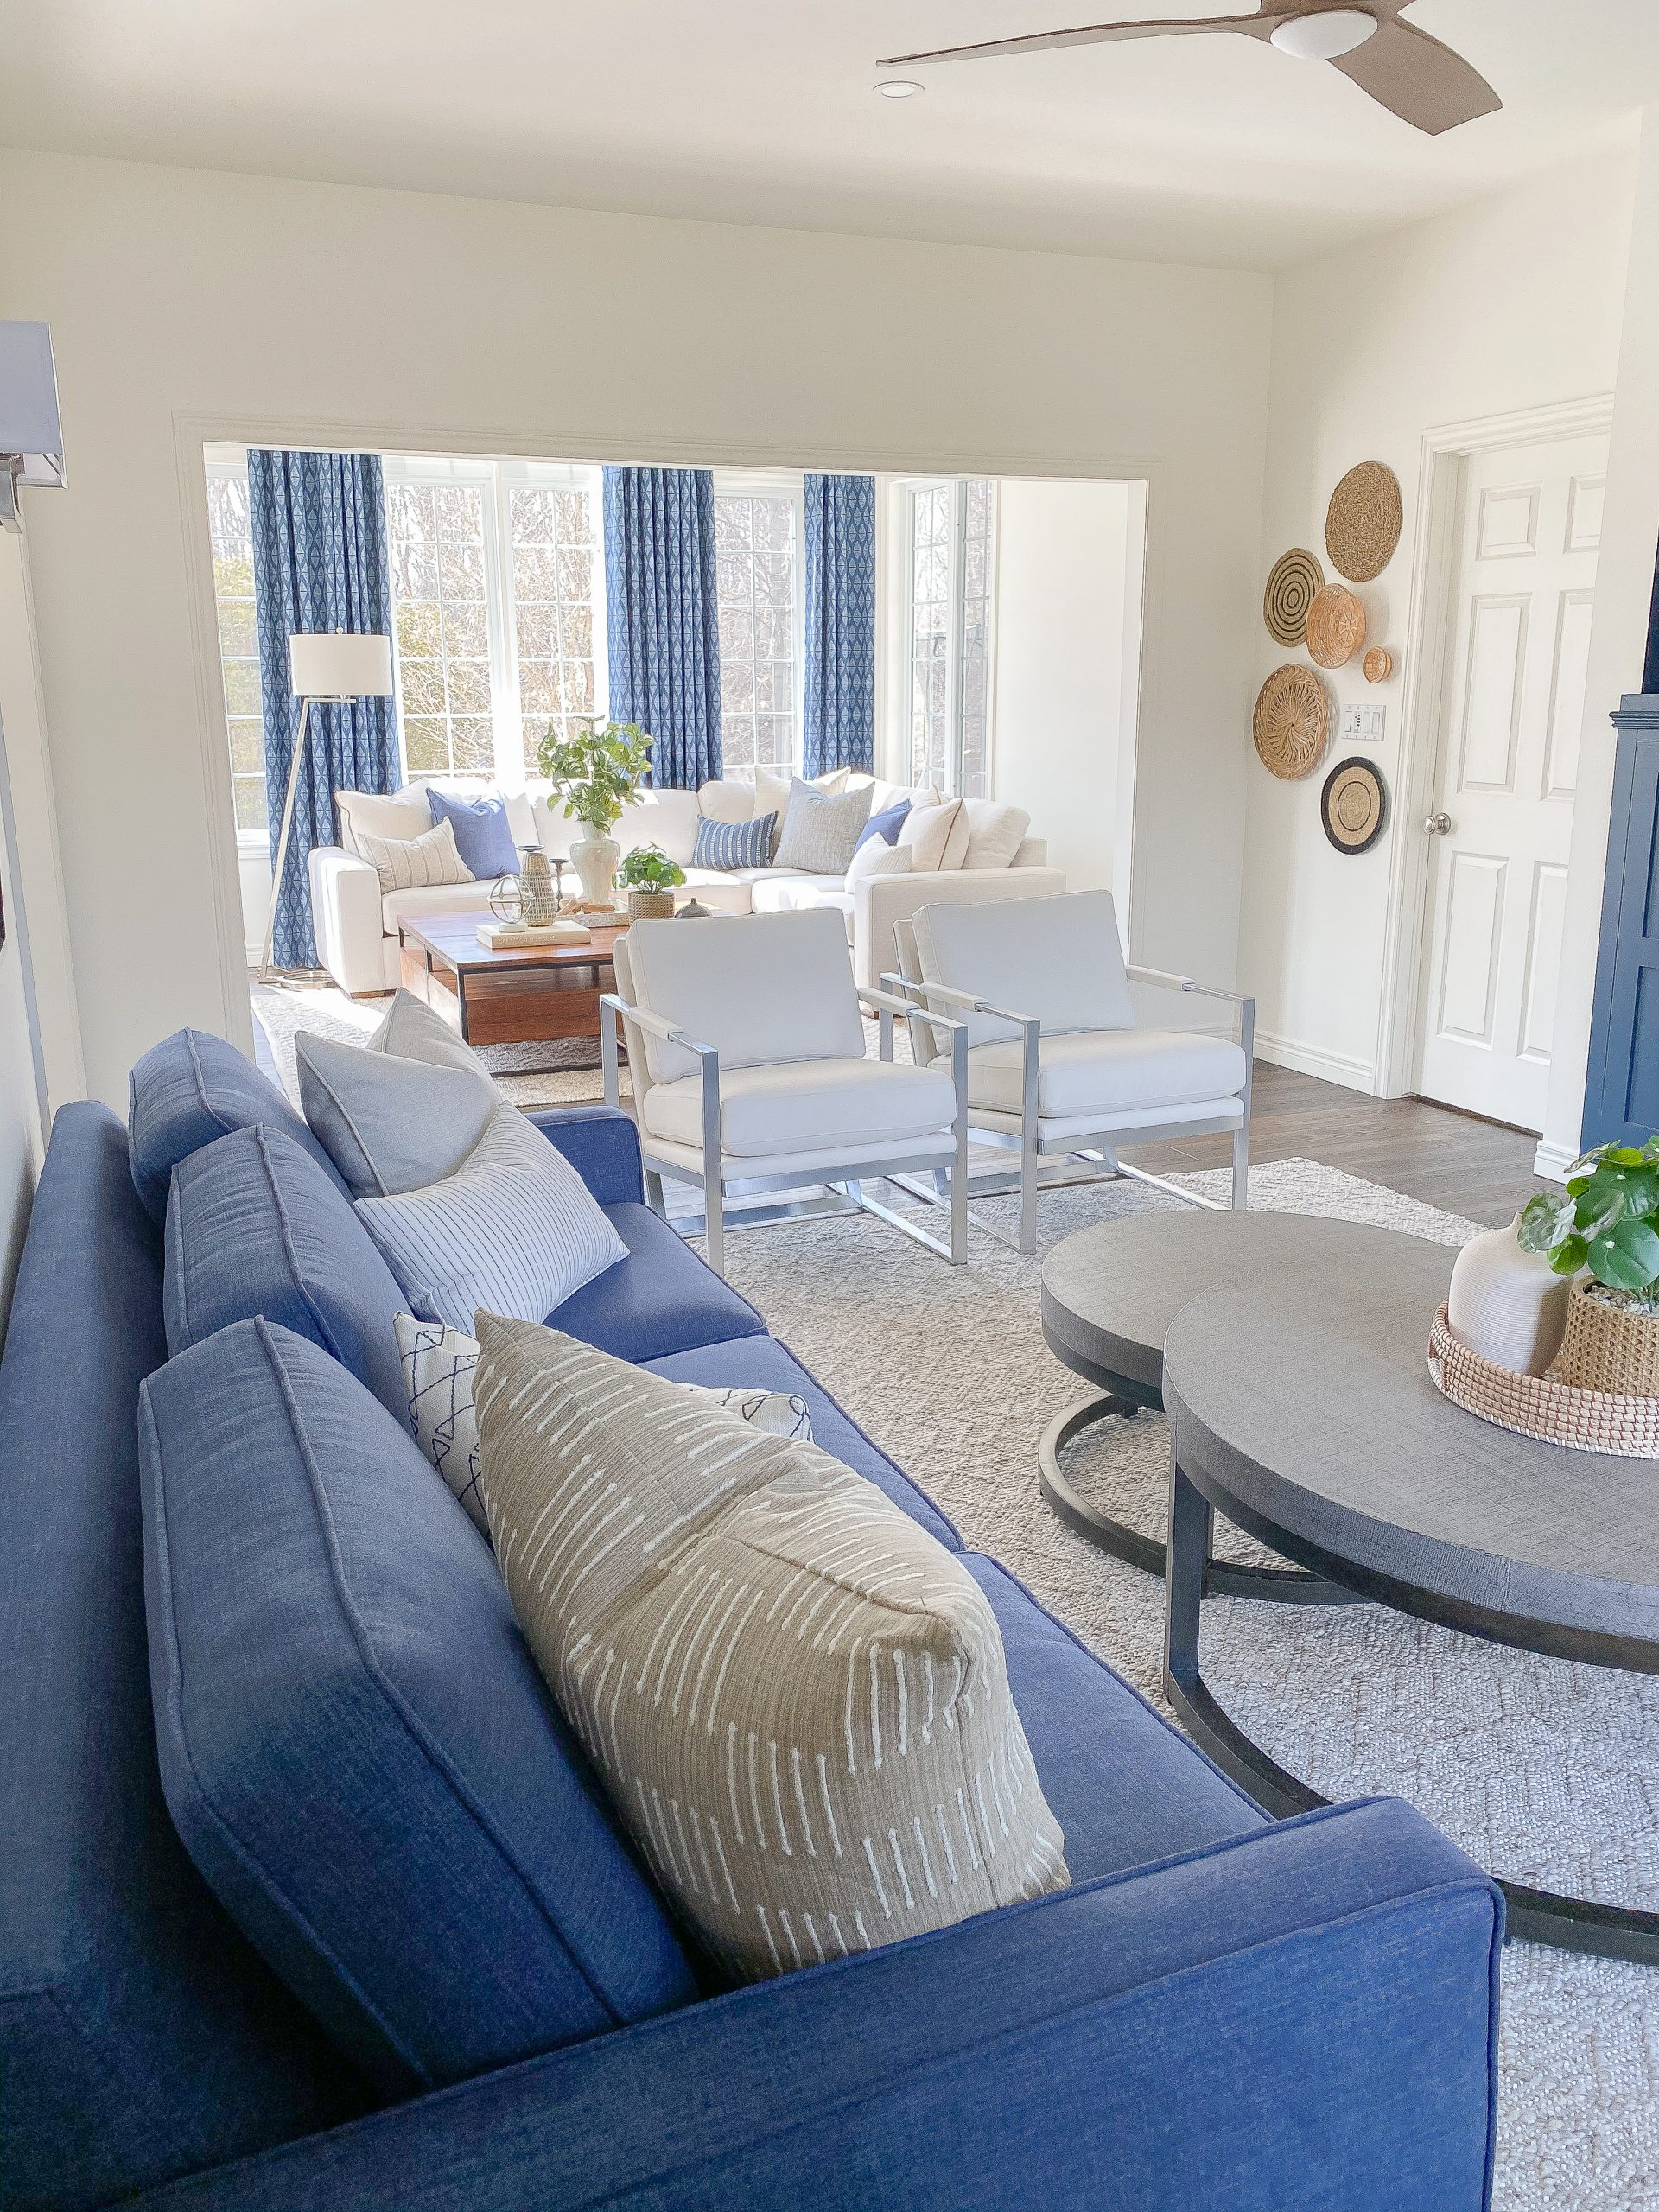 Colourful living room and sunroom transformation by an interior designer in Chatham Ontario